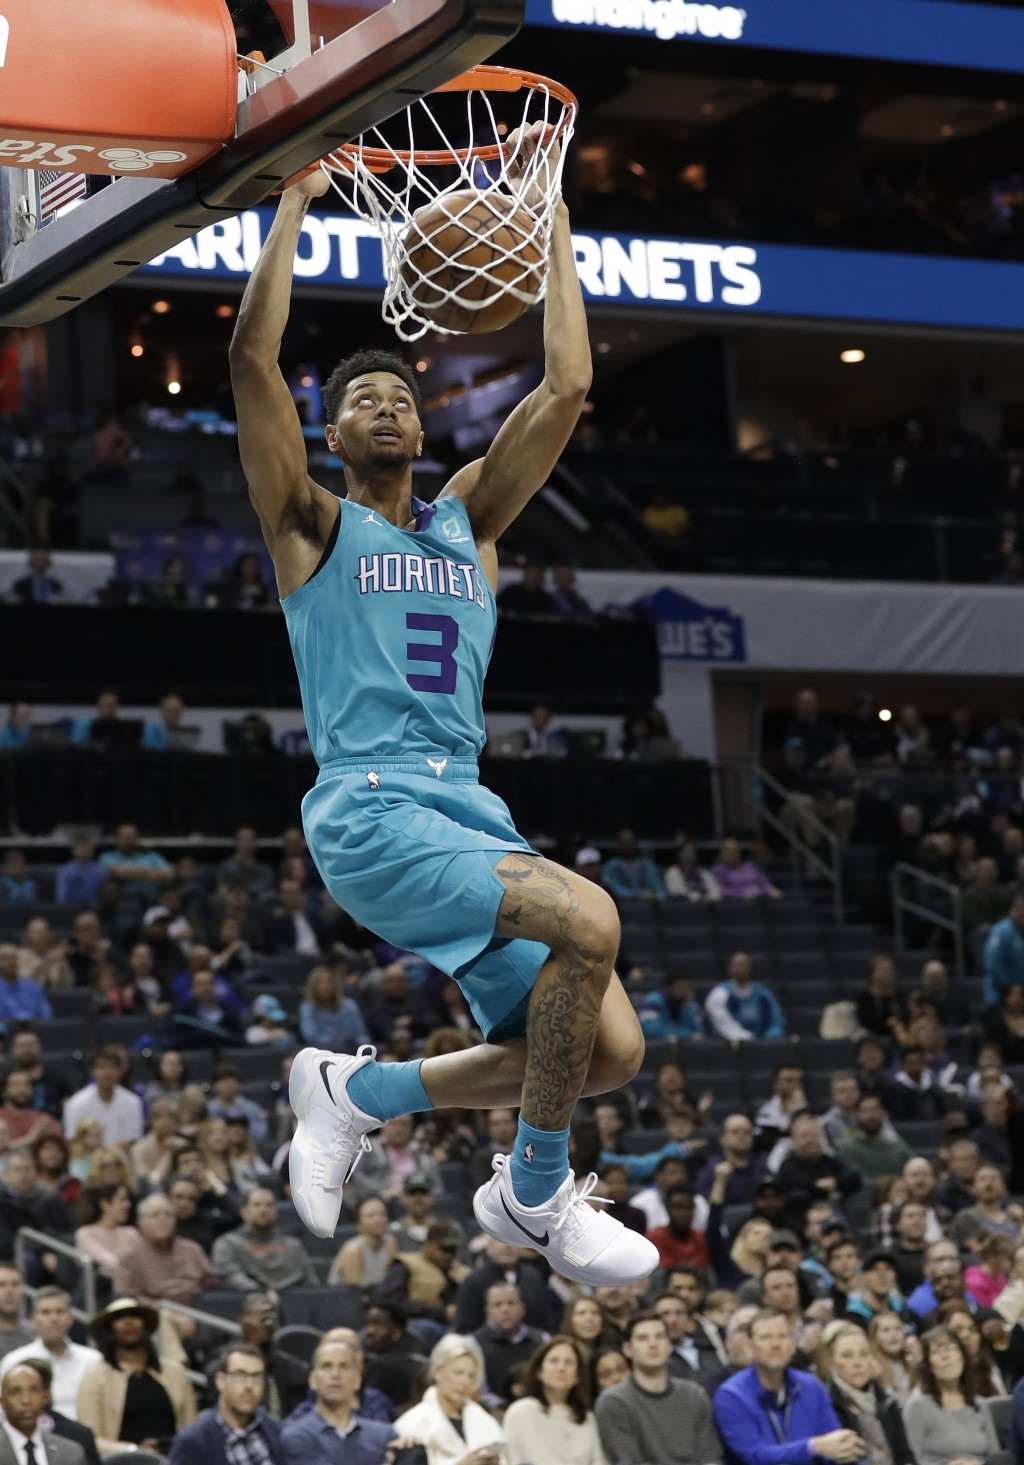 Charlotte Hornets guard Jeremy Lamb (3) dunks against the Washington Wizards during the first half of an NBA basketball game in Charlotte, N.C., Frida...